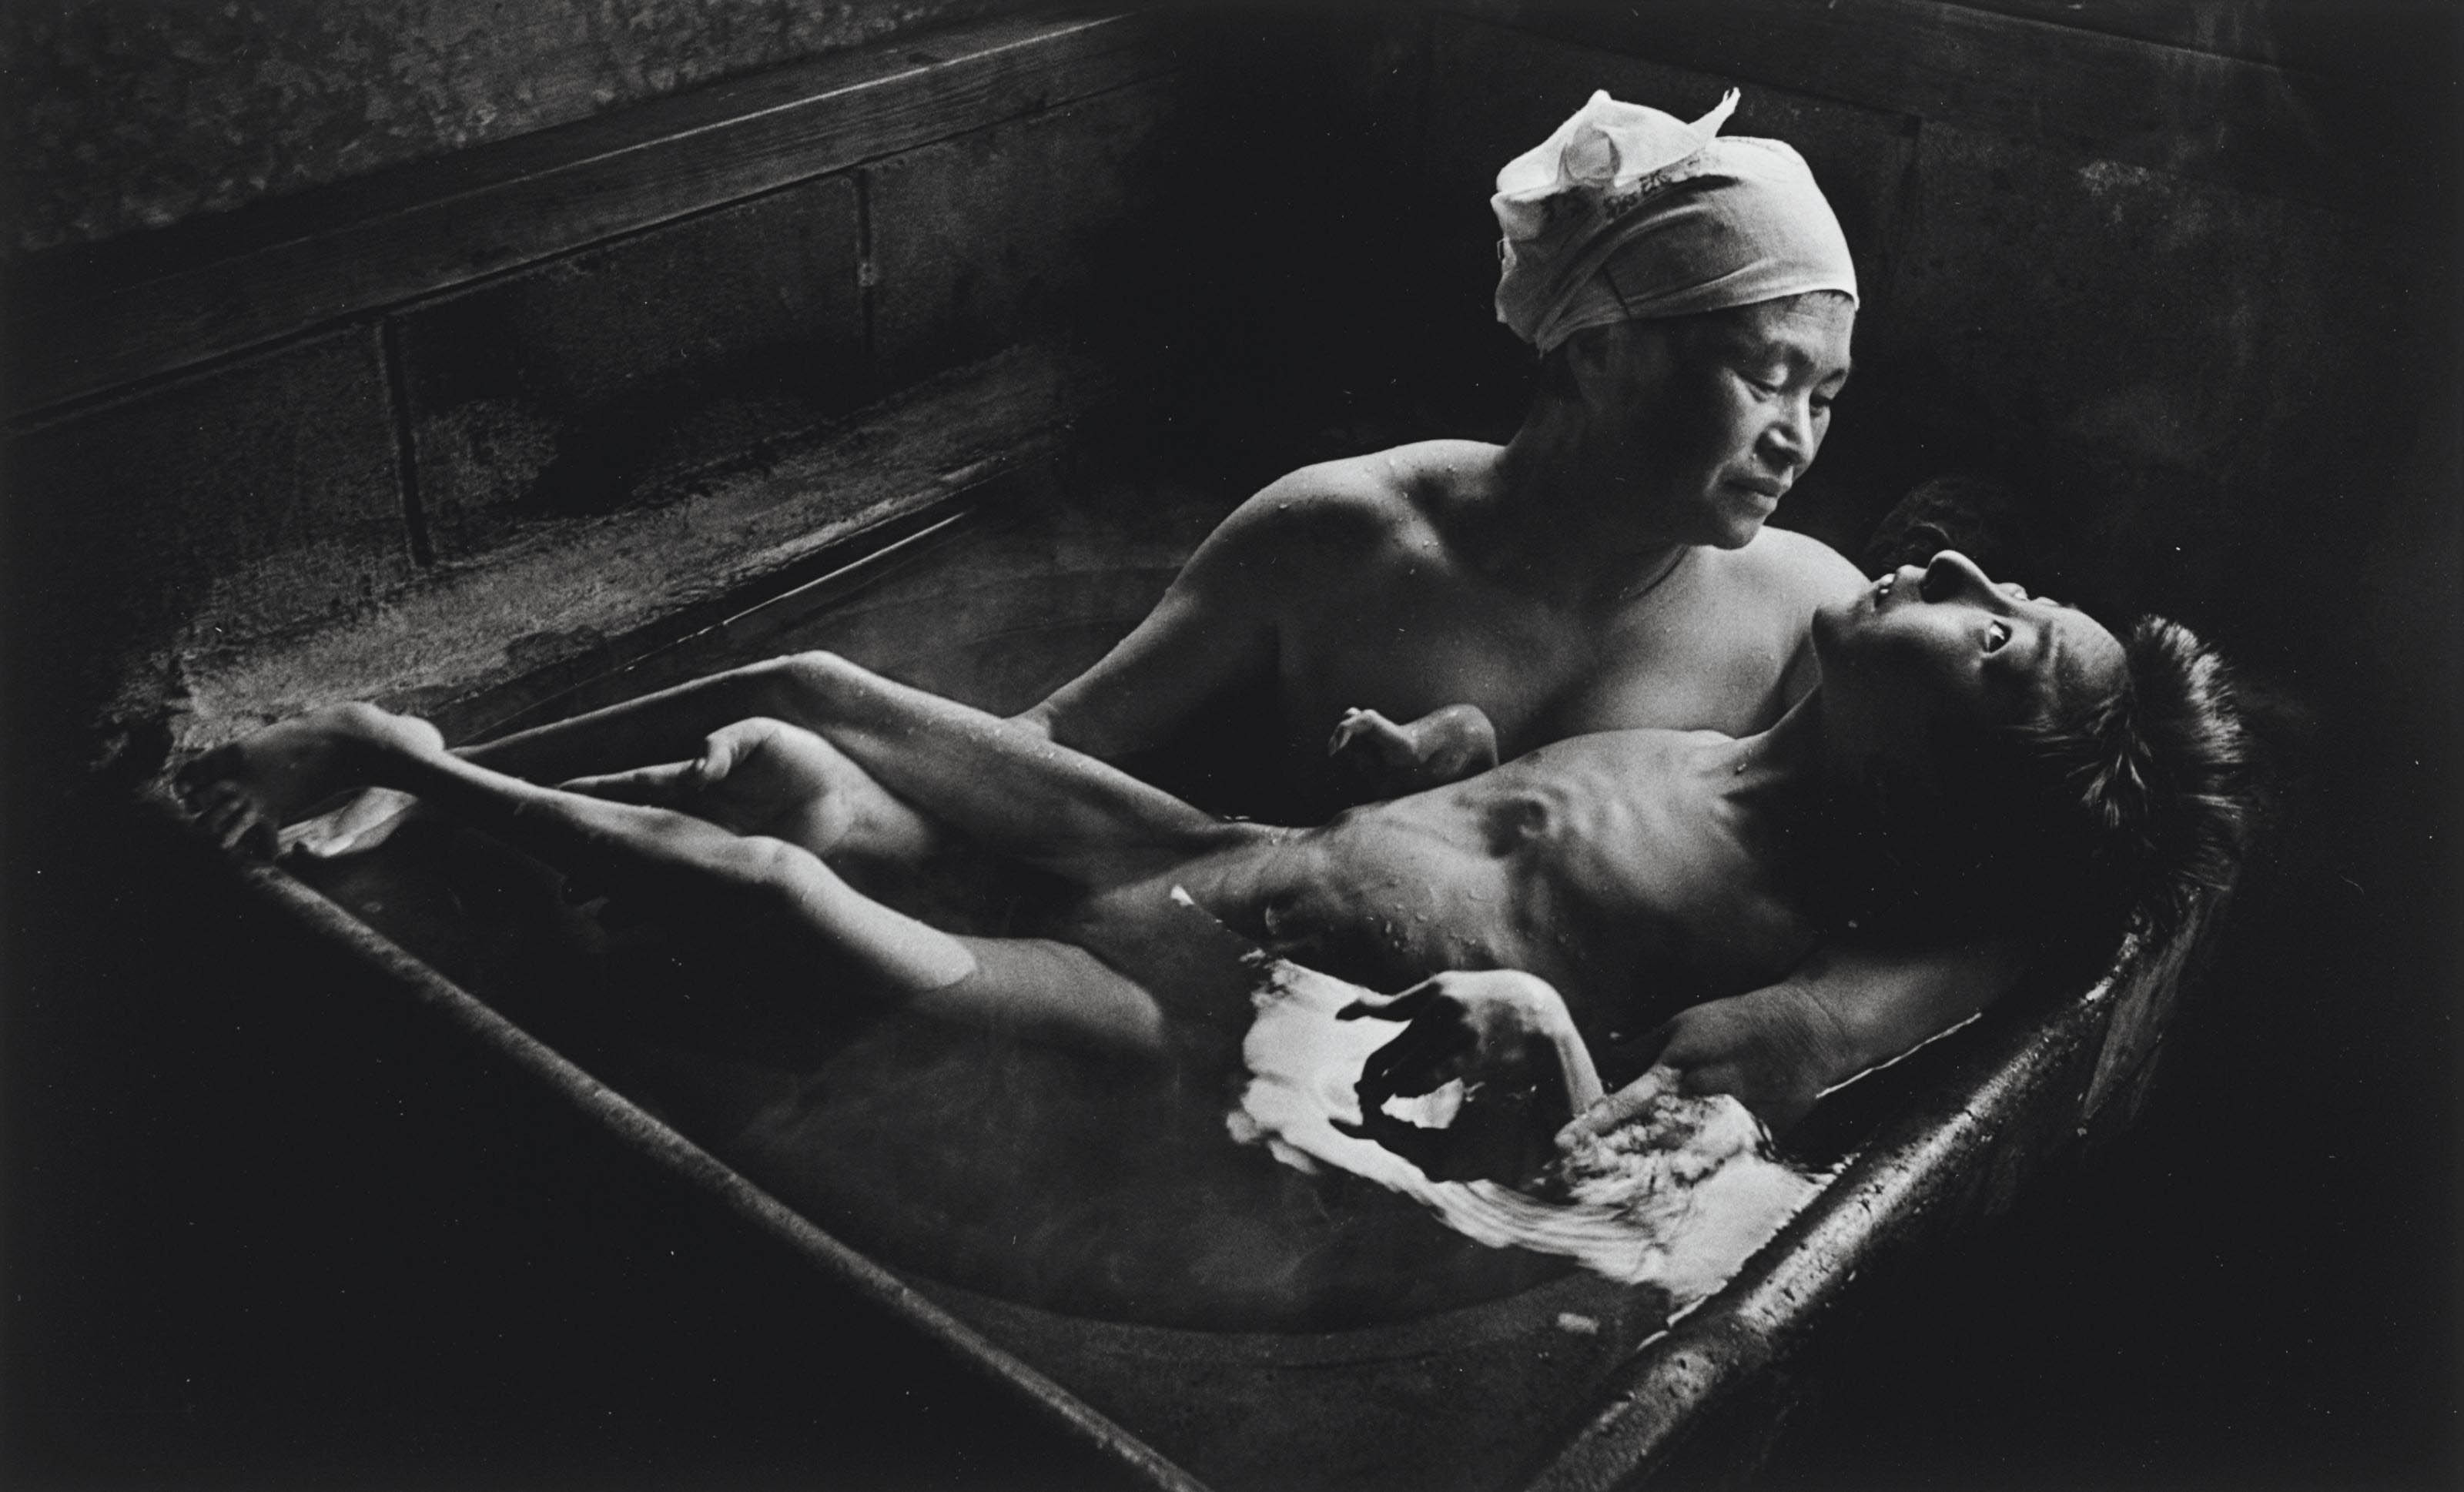 Tomoko in her Bath, Minamata, Japan, 1972